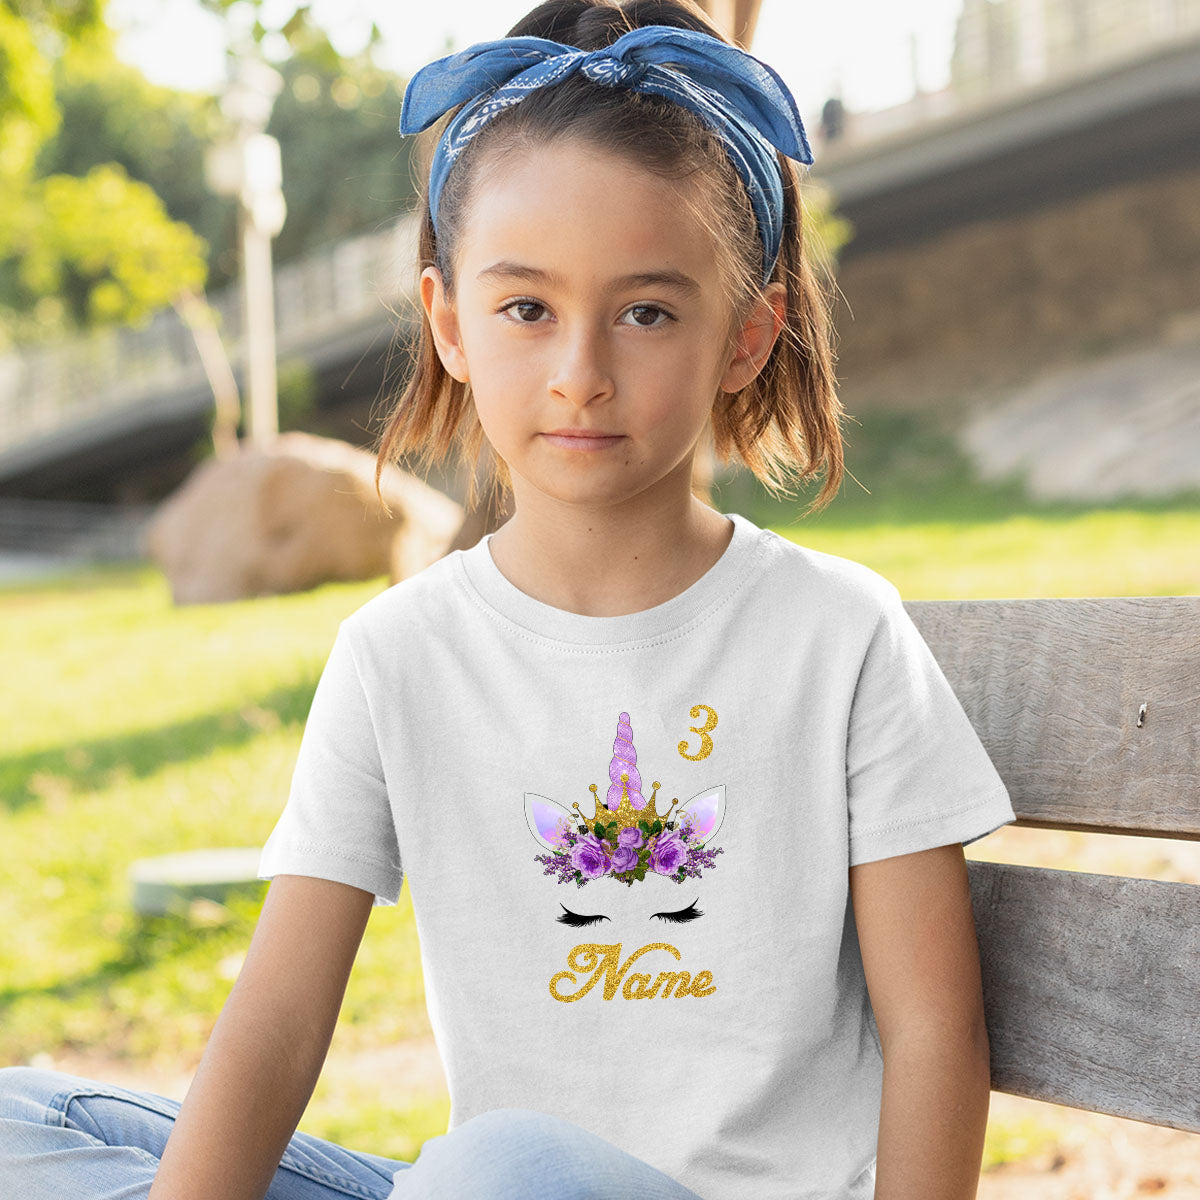 Sprinklecart Lovely Unicorn Birthday T Shirt | Personalized 3rd Birthday Dress for Your Little Unicorn